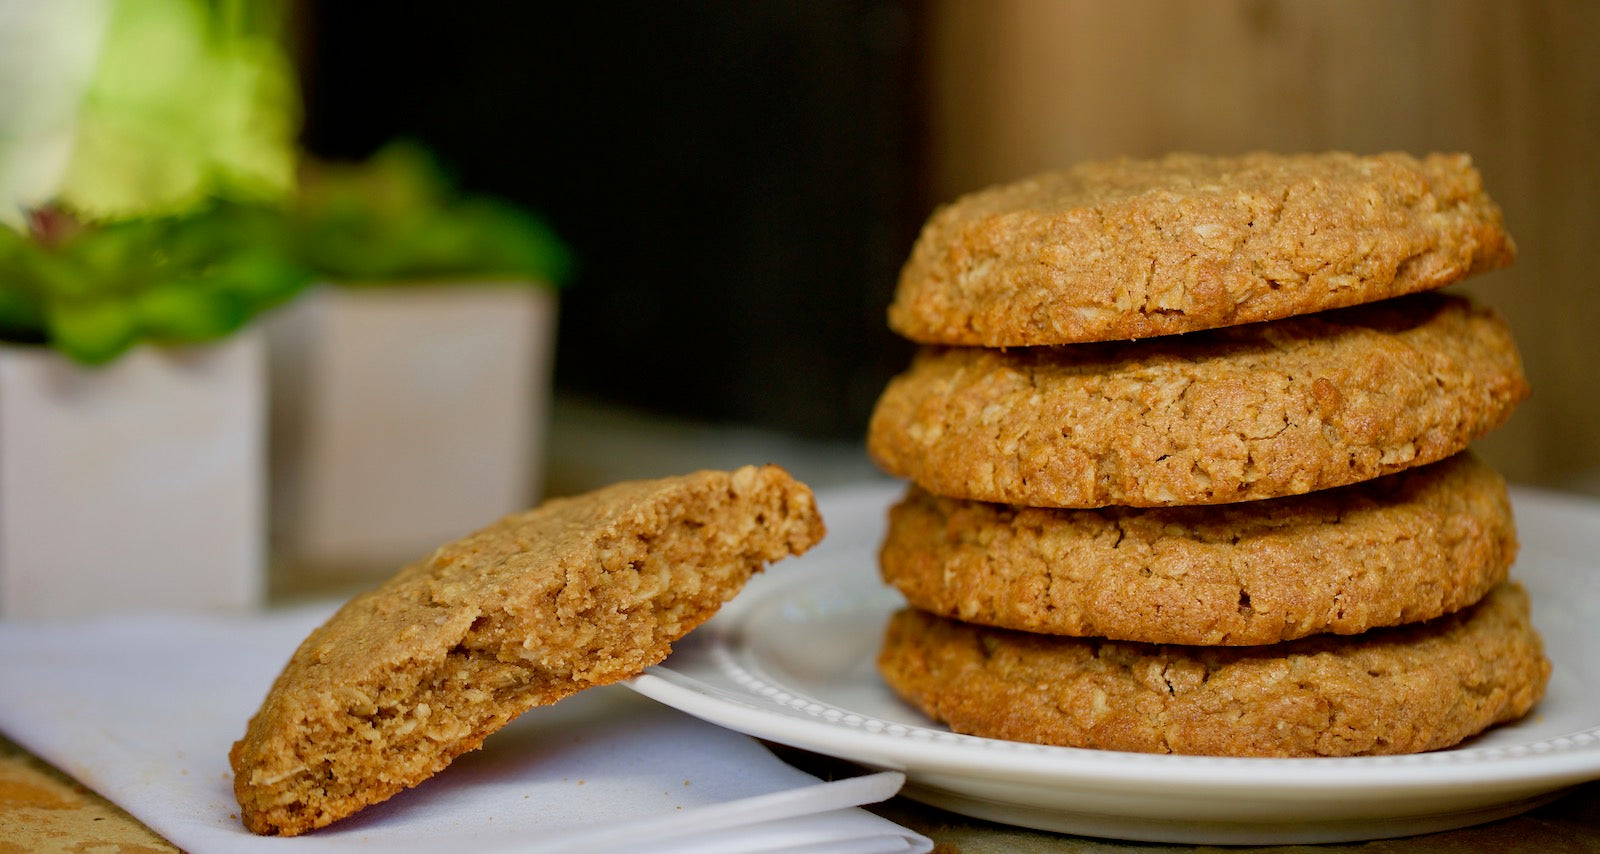 big sky bread company peanut butter cookies are incredible! Whole Wheat and Whole Oats